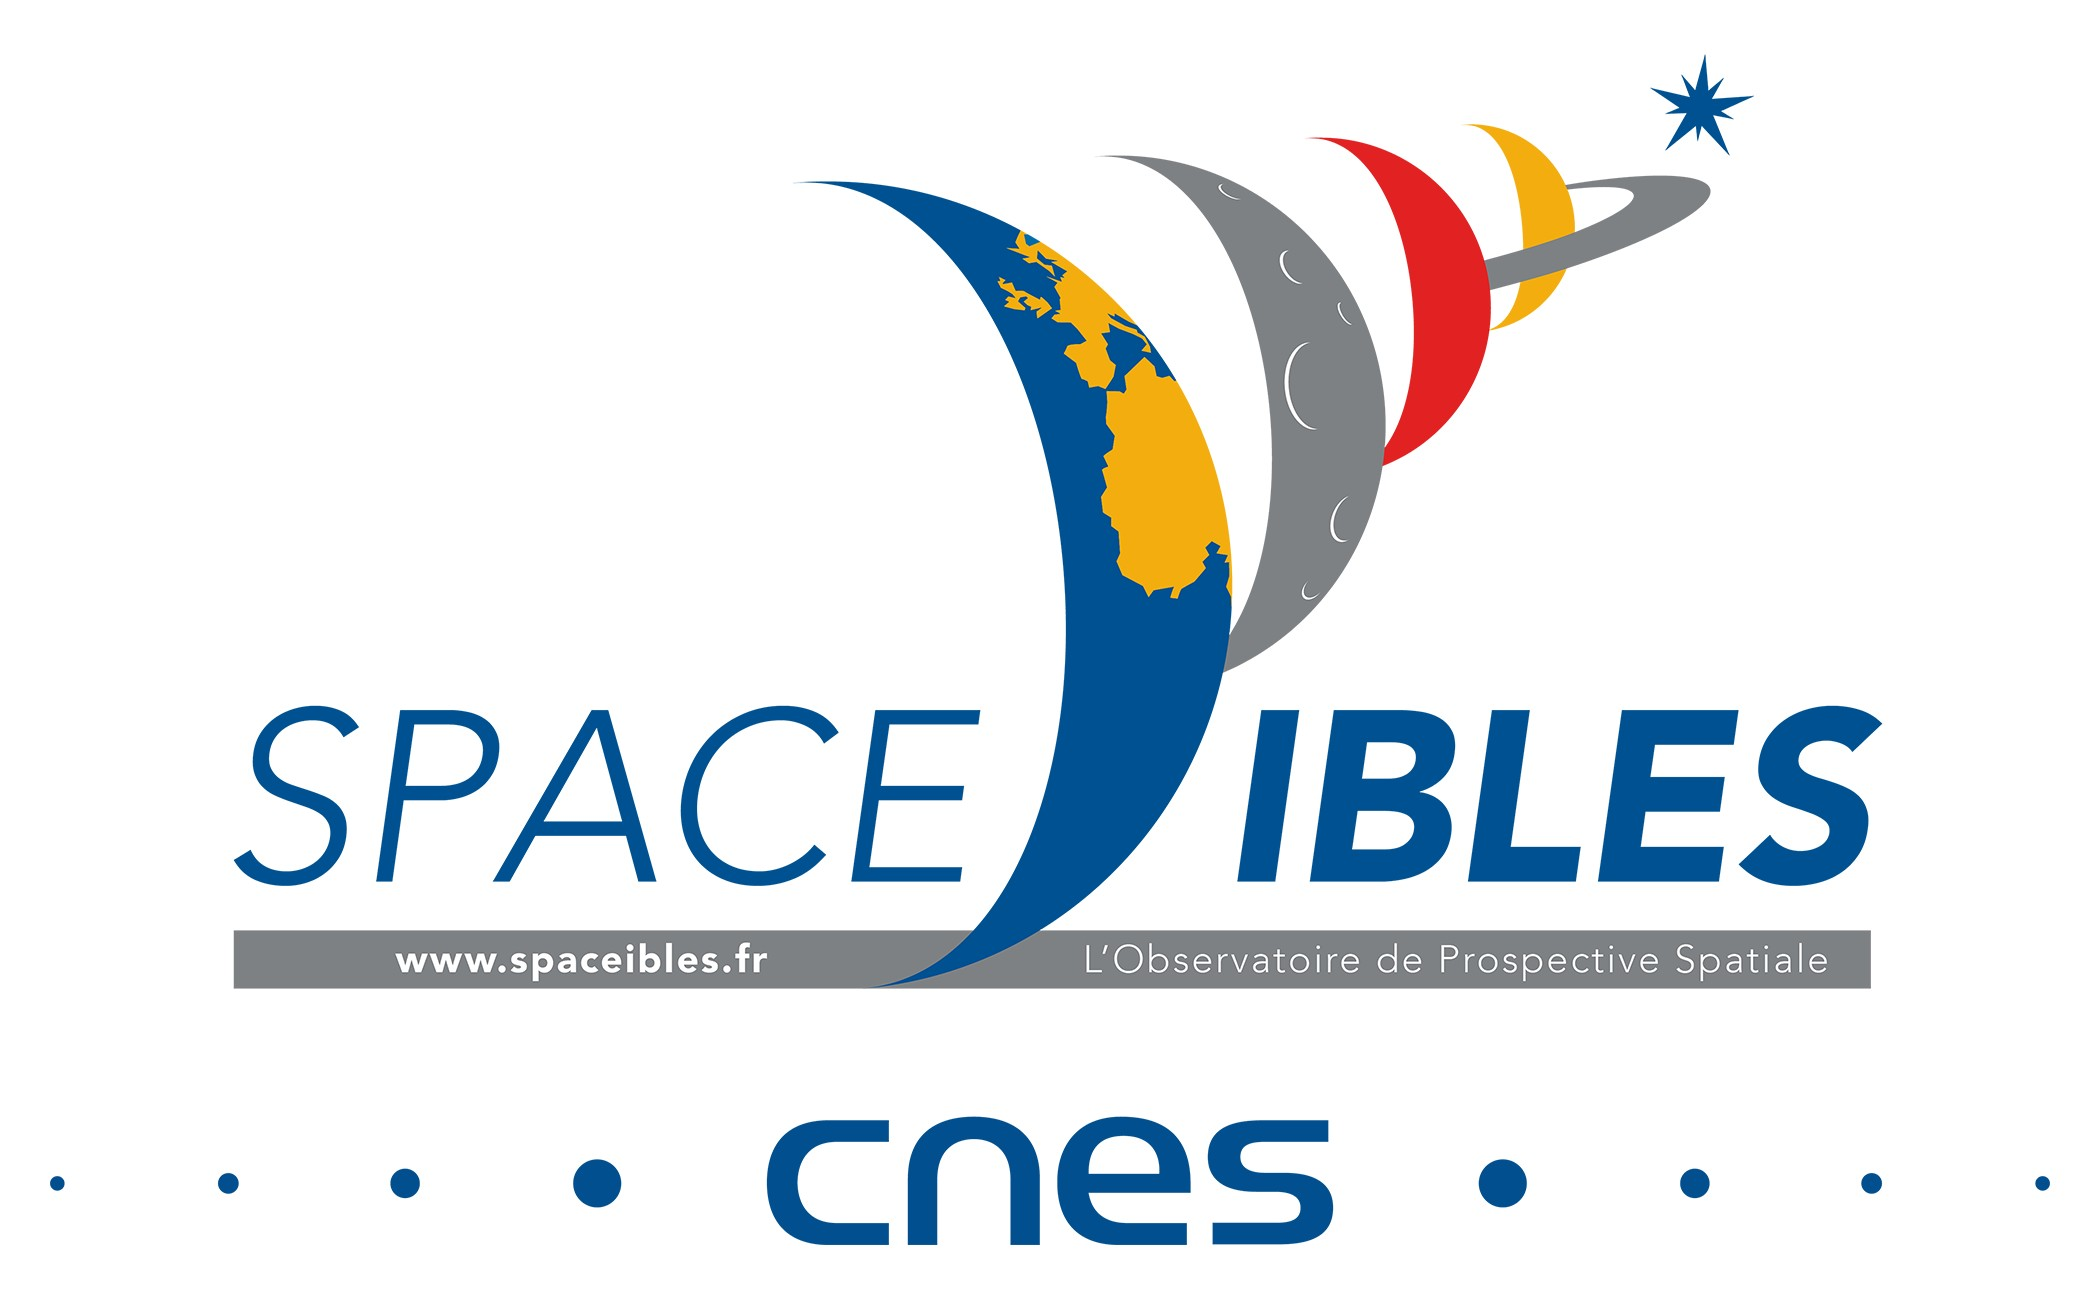 Editoriale   Murielle Lafaye, CNES   Space'ibles 2017